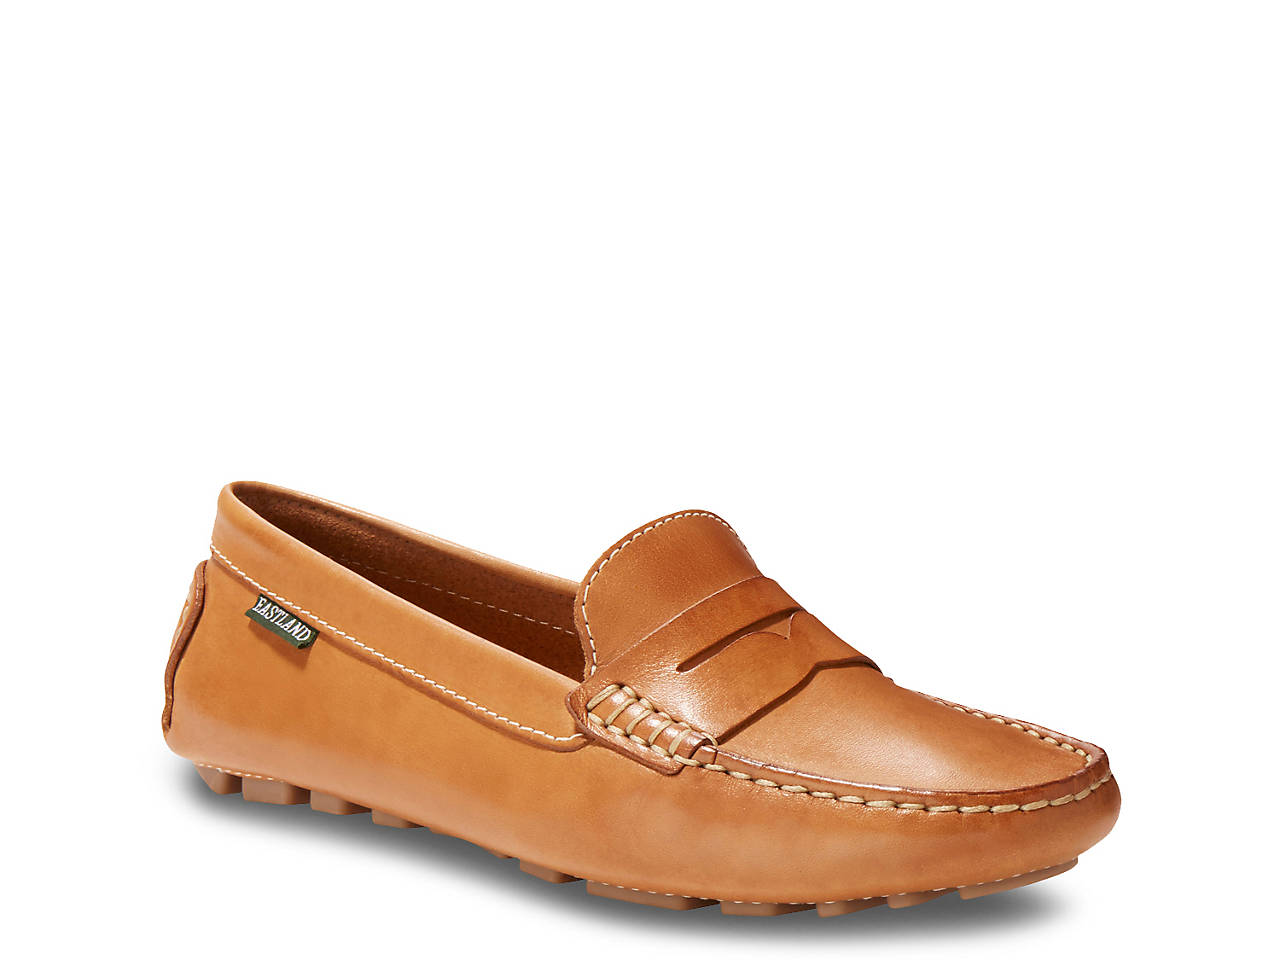 b87459b9d02 Eastland Patricia Loafer Women s Shoes